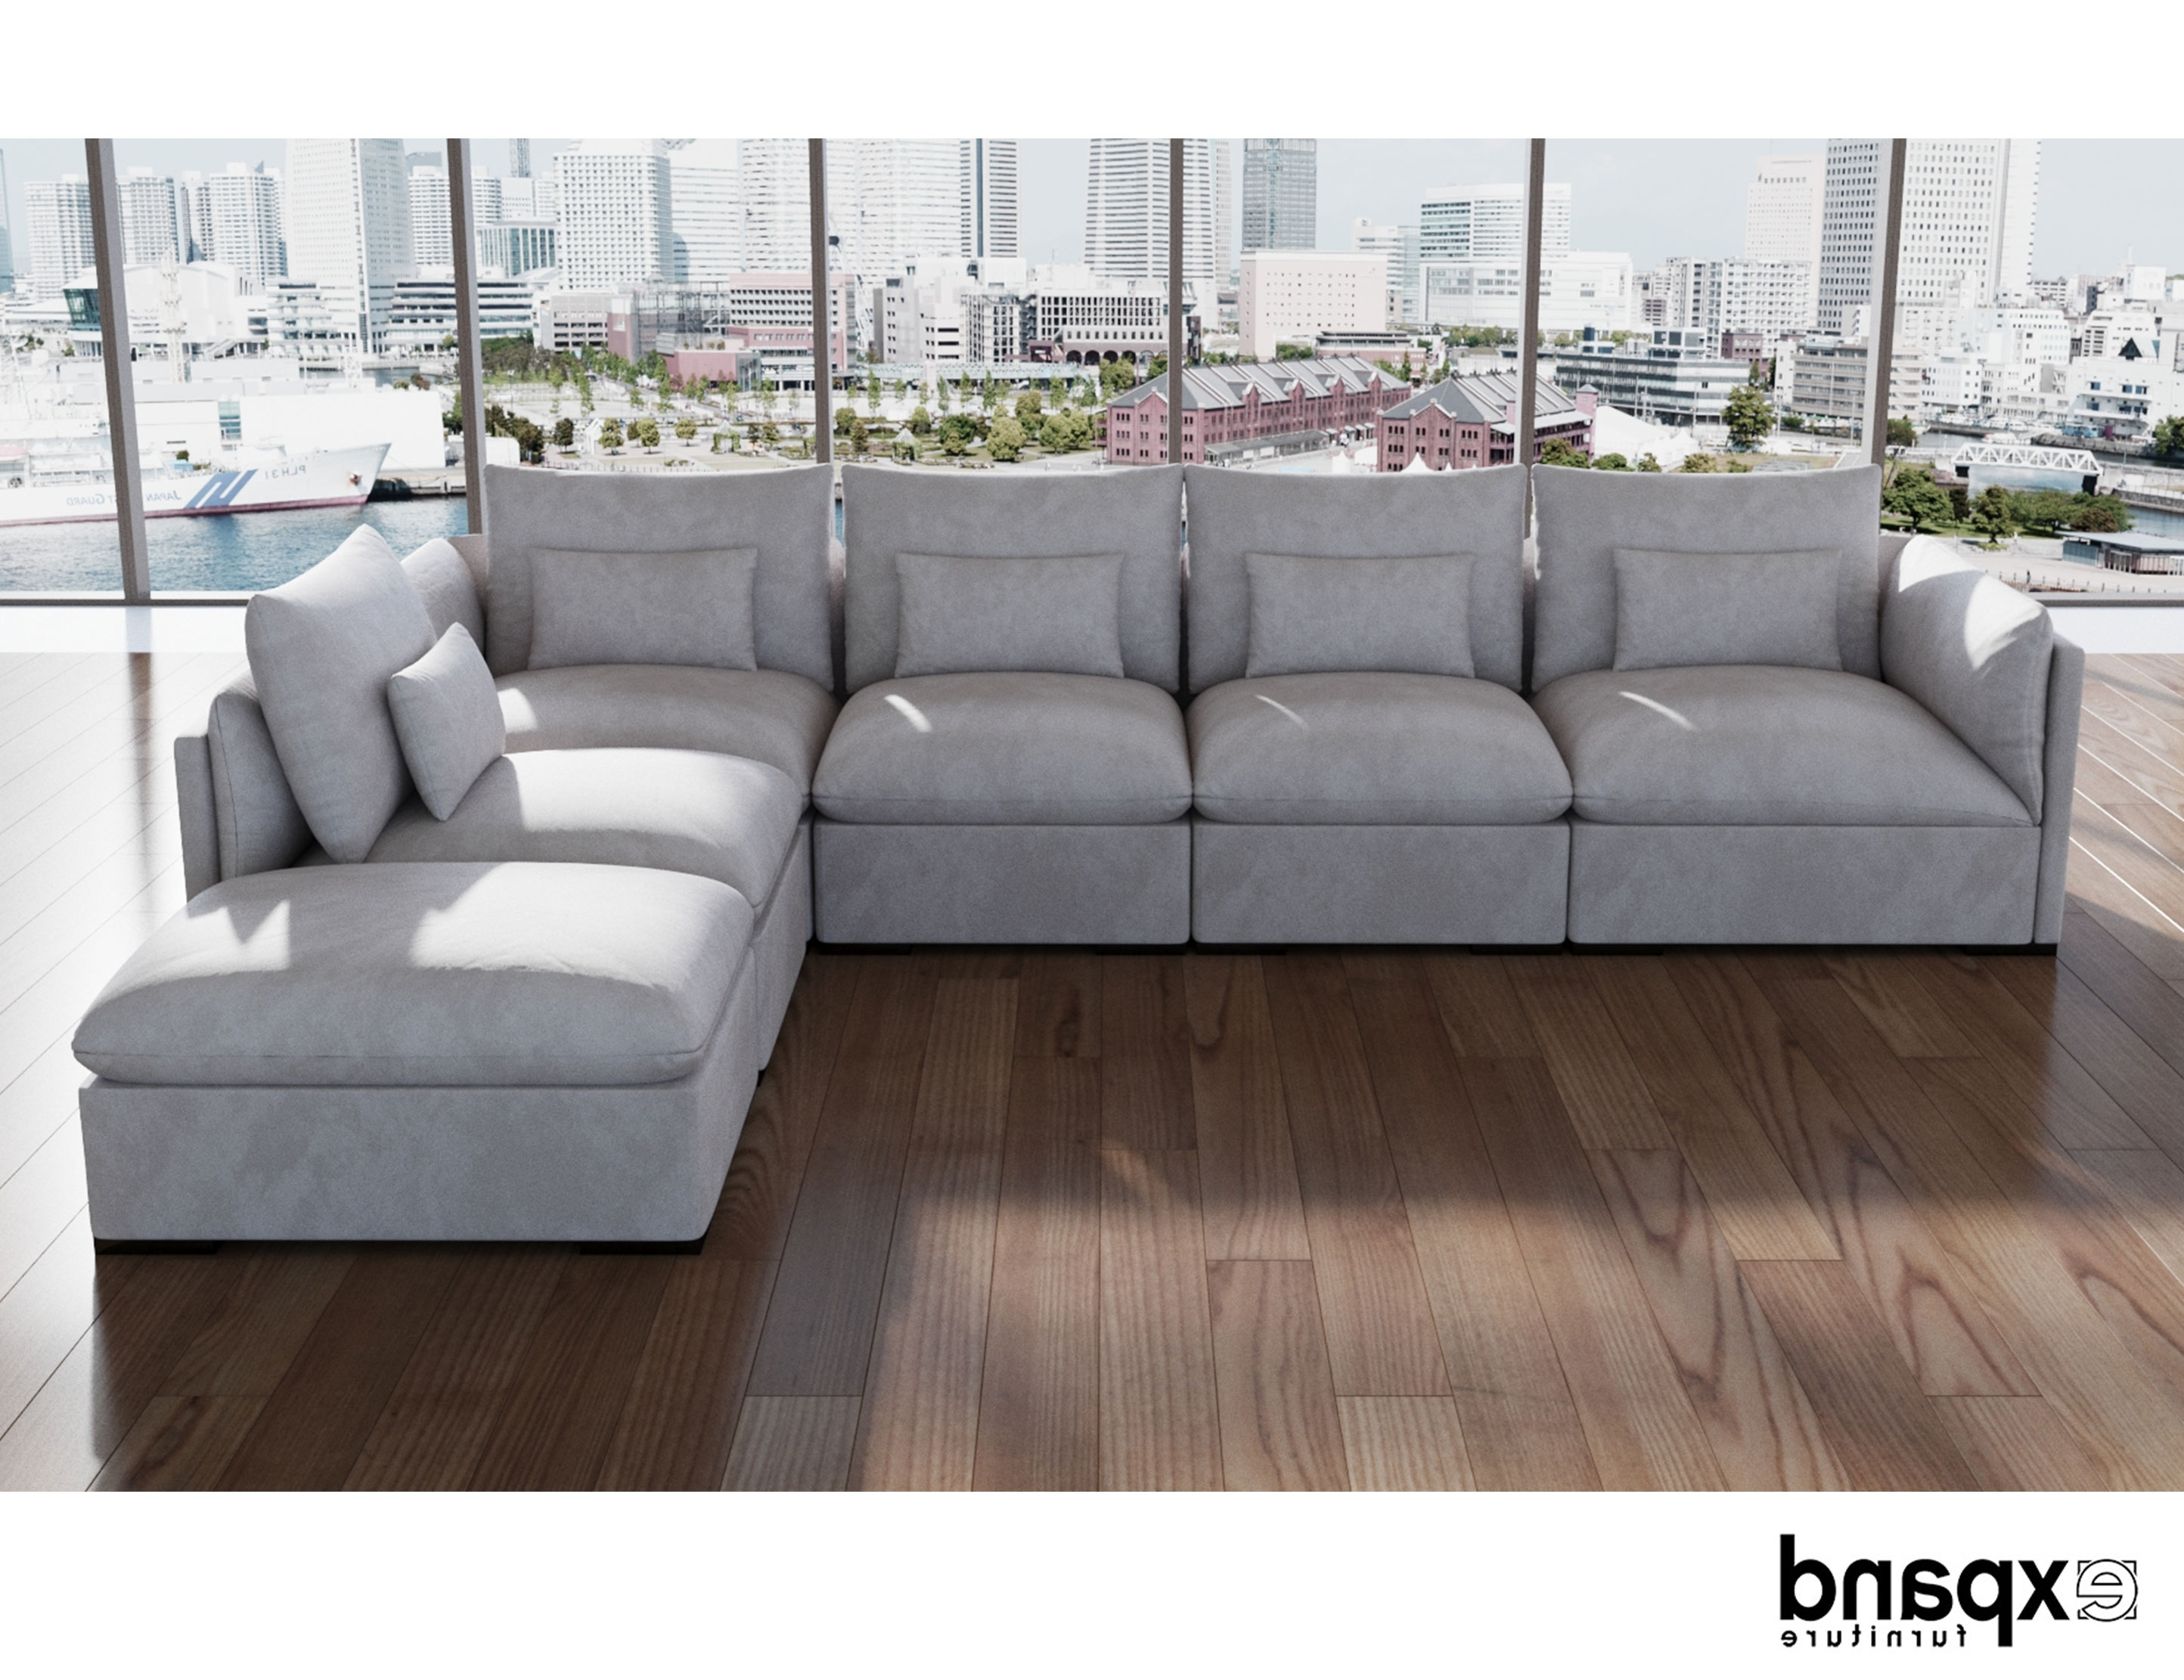 Expand Furniture Intended For Trendy Down Feather Sectional Sofas (View 6 of 15)